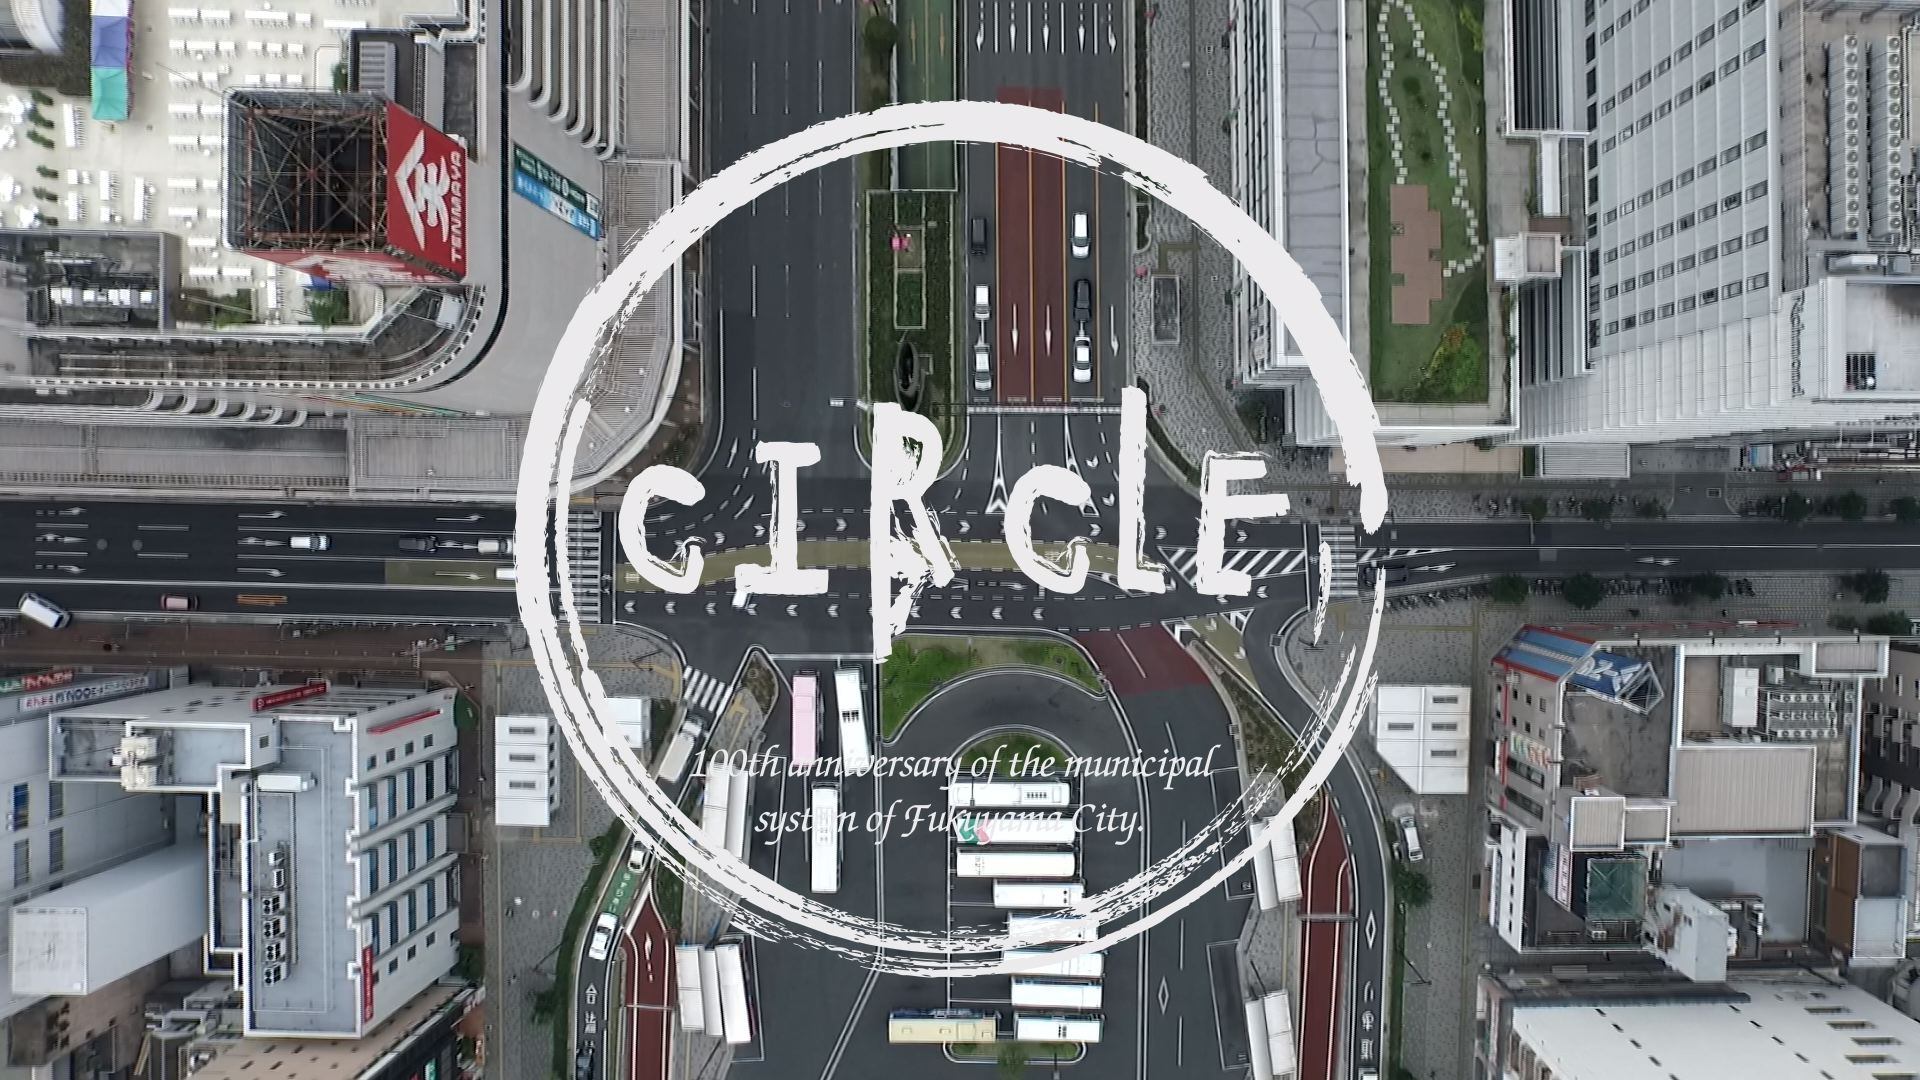 CIRCLE -TO THE NEXT 100 YEARS-